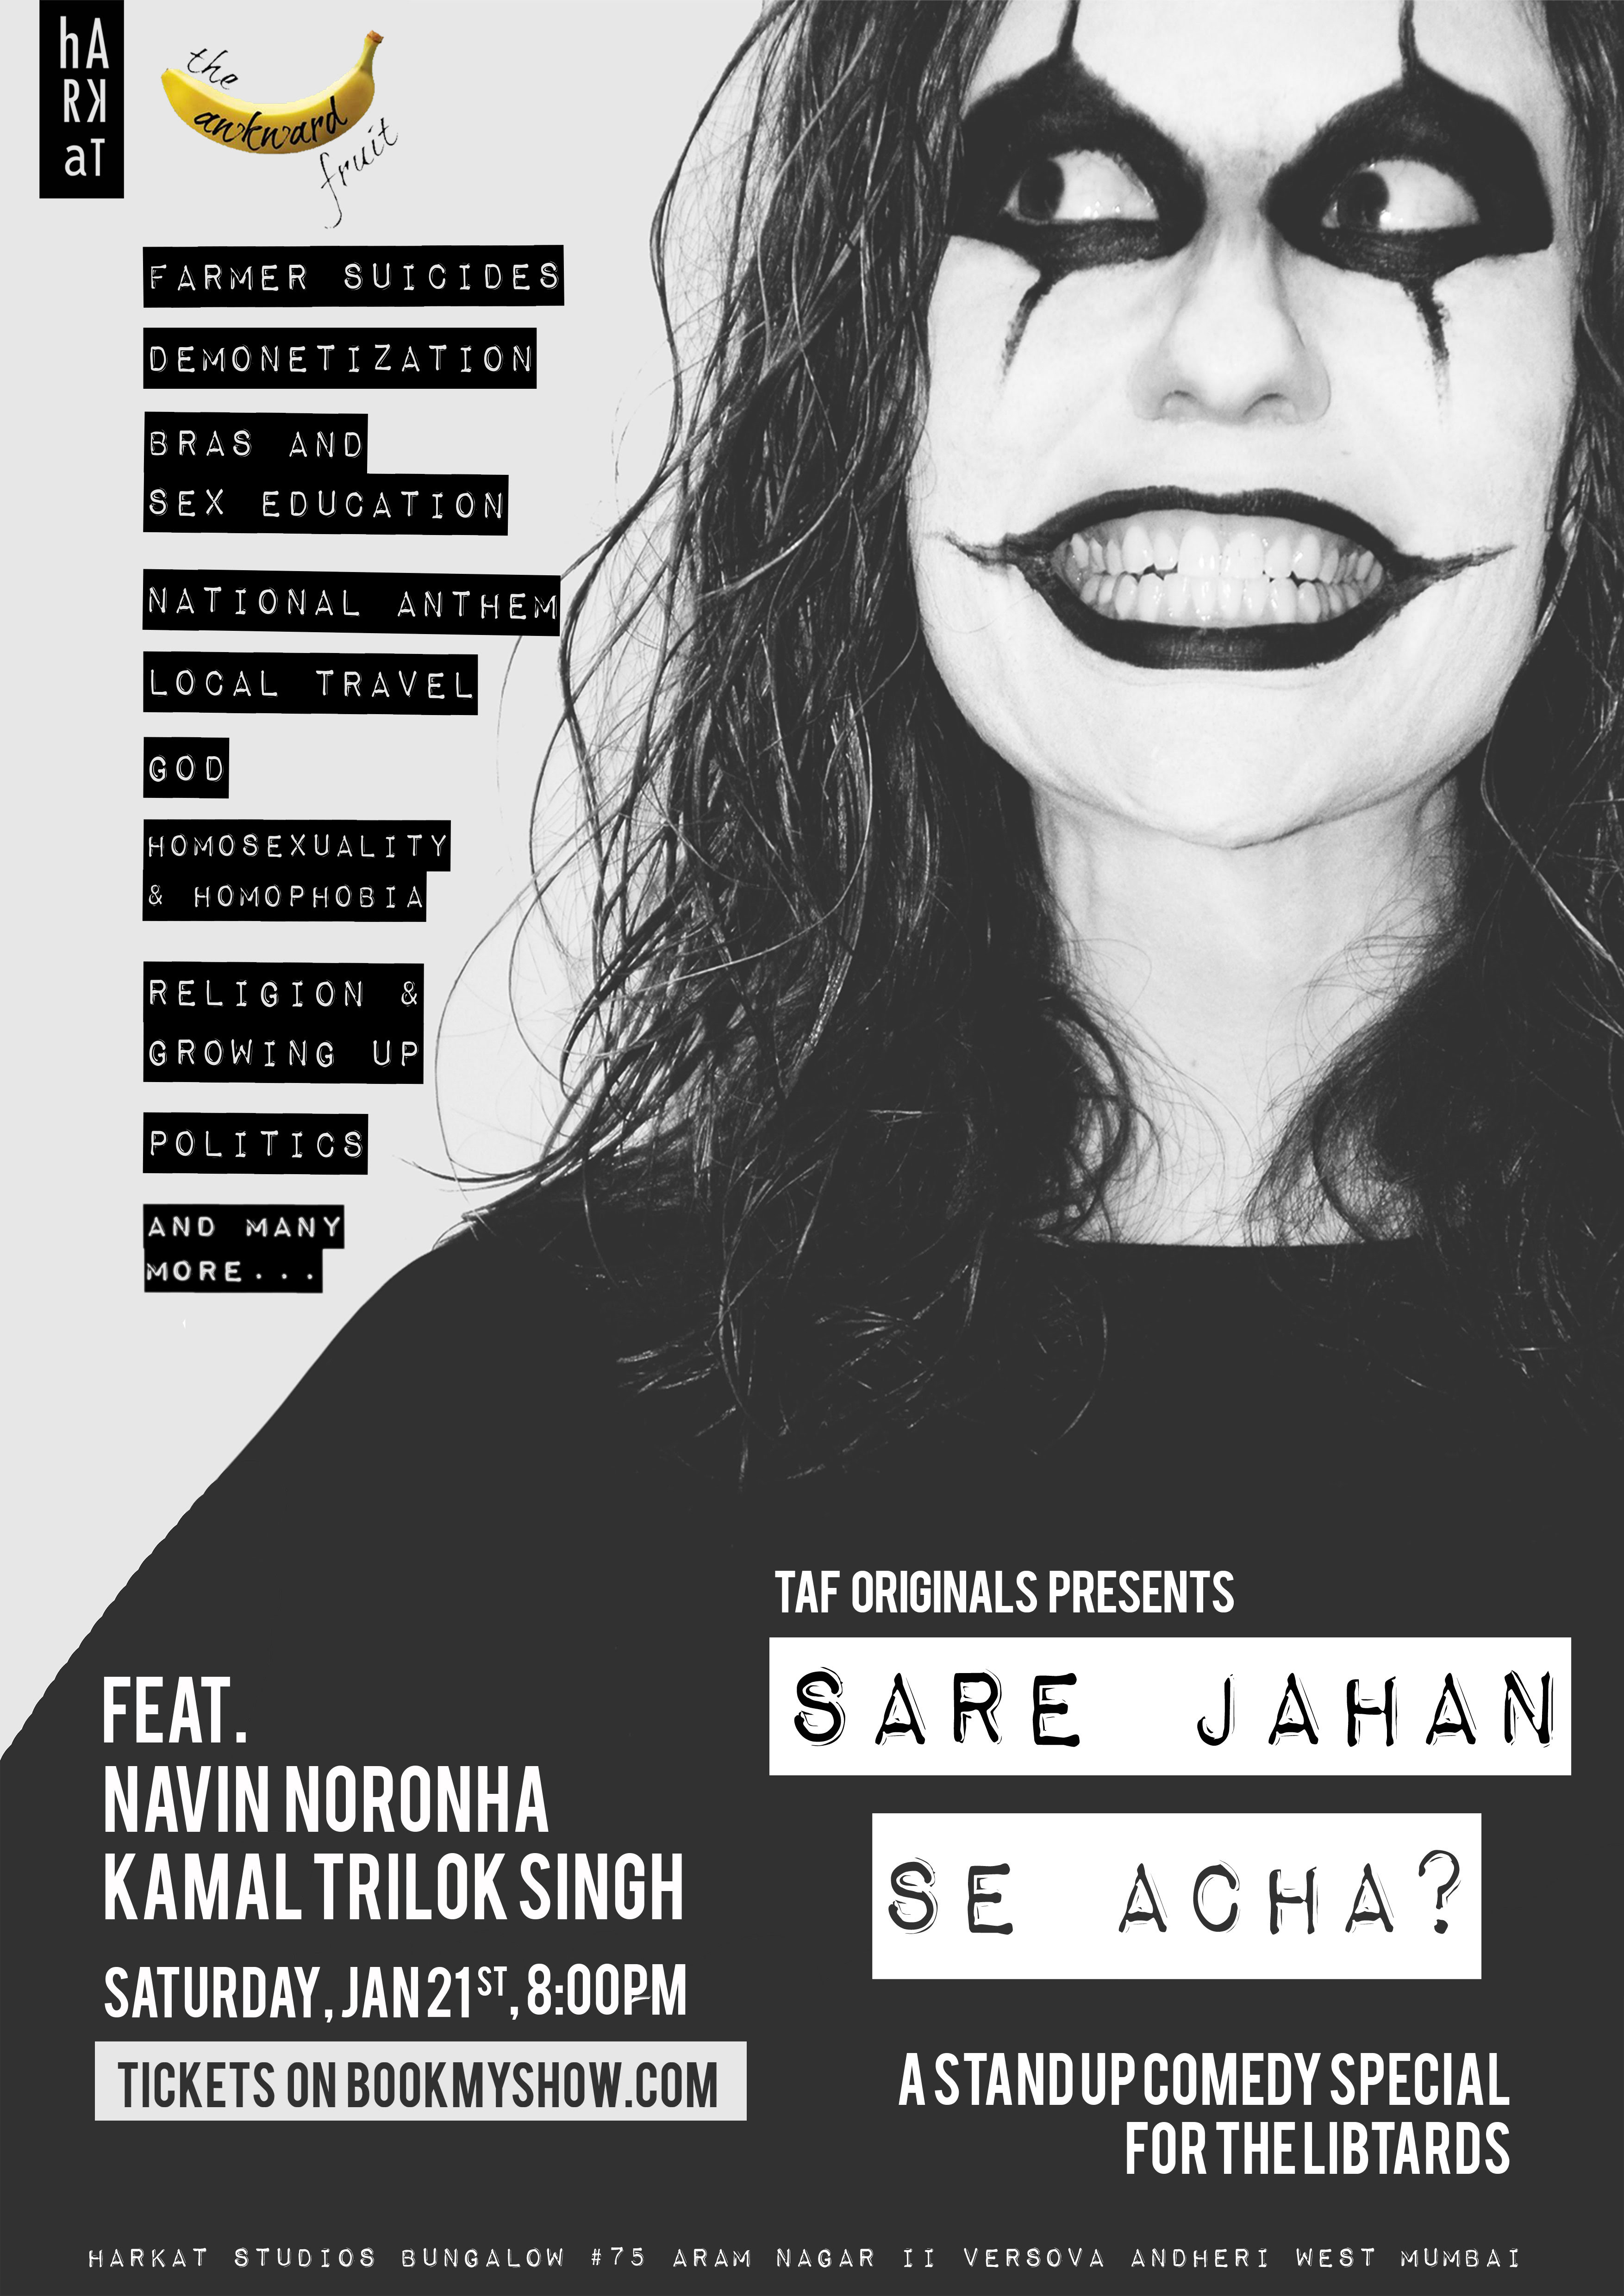 Sare Jahan Se Acha, A Stand Up Comedy Performance